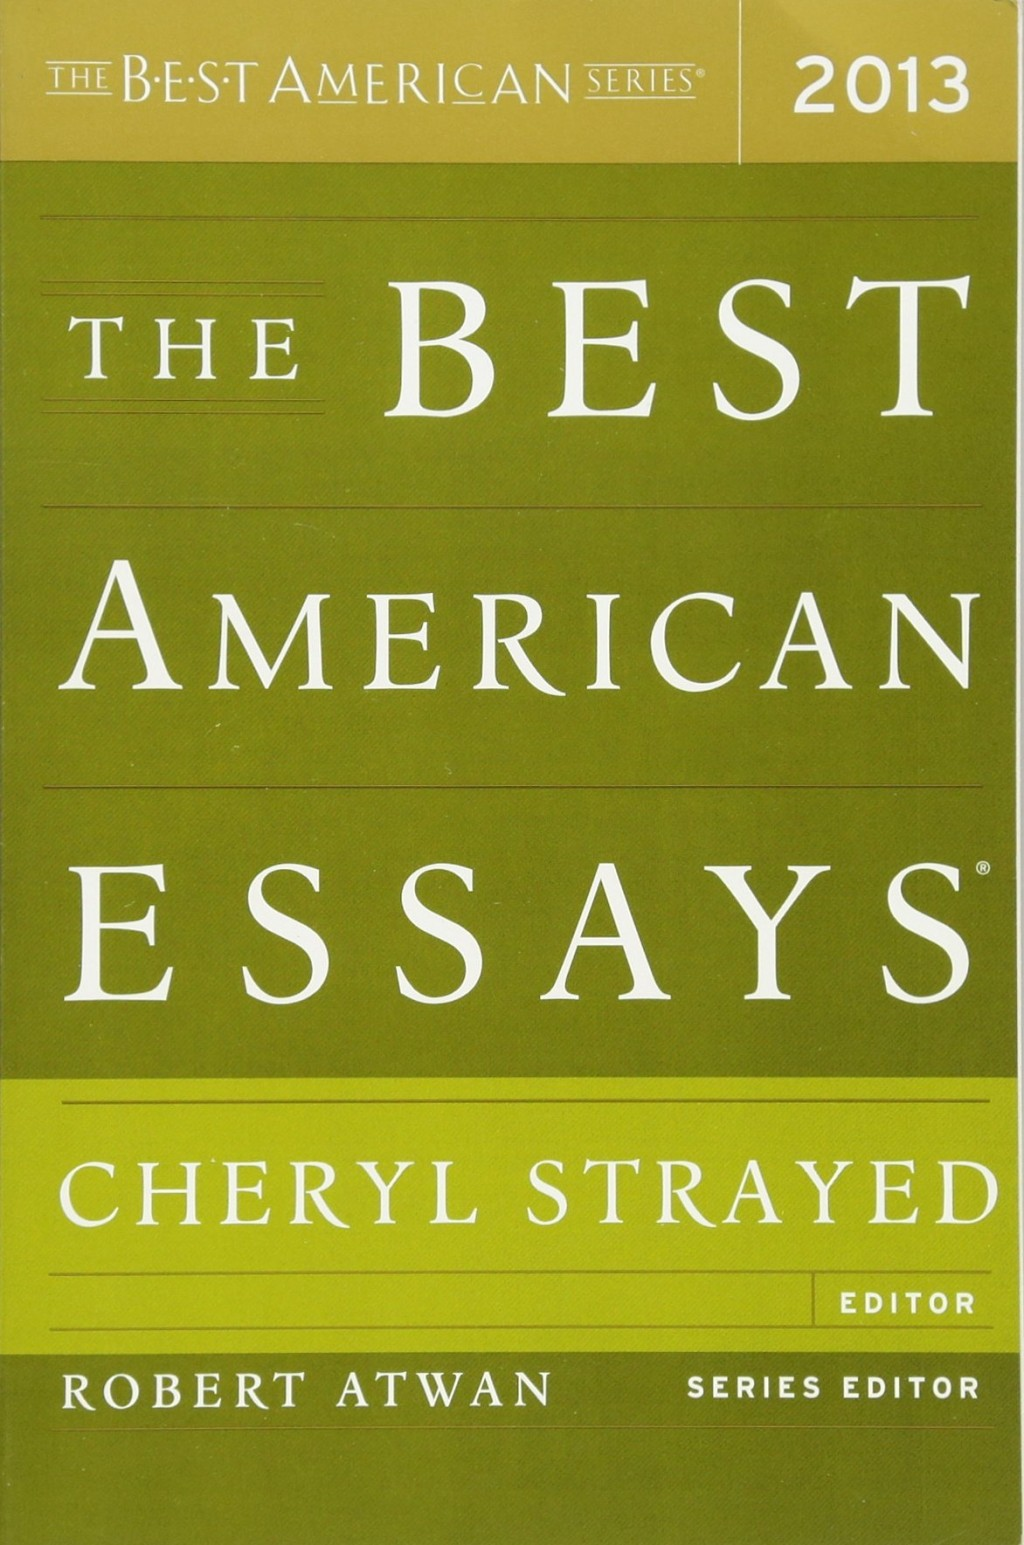 002 Essay Example 81nkls2j9vl Best American Striking Essays 2017 Pdf Submissions 2019 Of The Century Table Contents Large